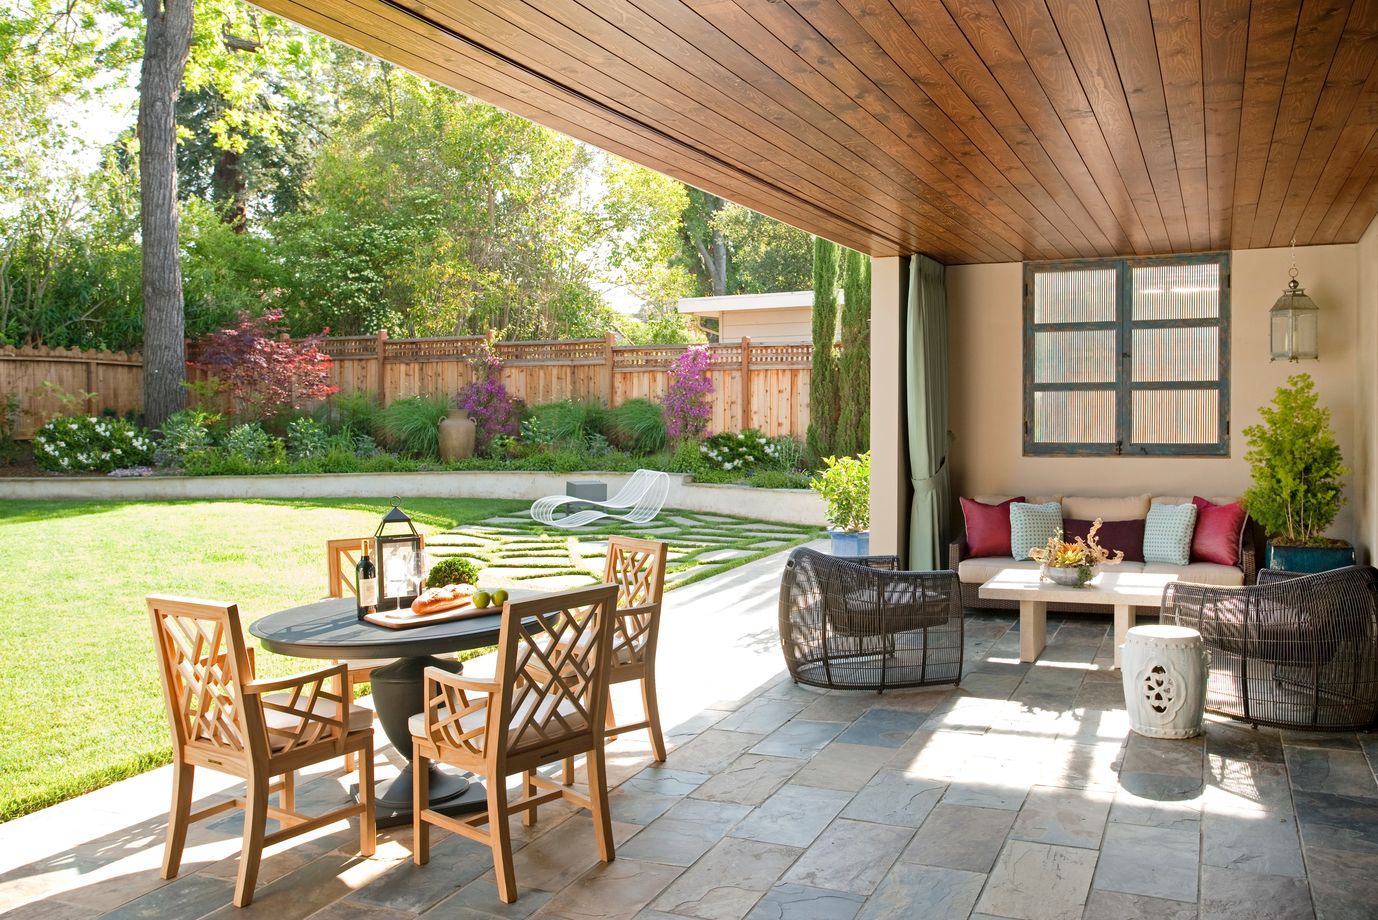 Outdoor living 8 ideas to get the most out of your space for Outdoor patio space ideas